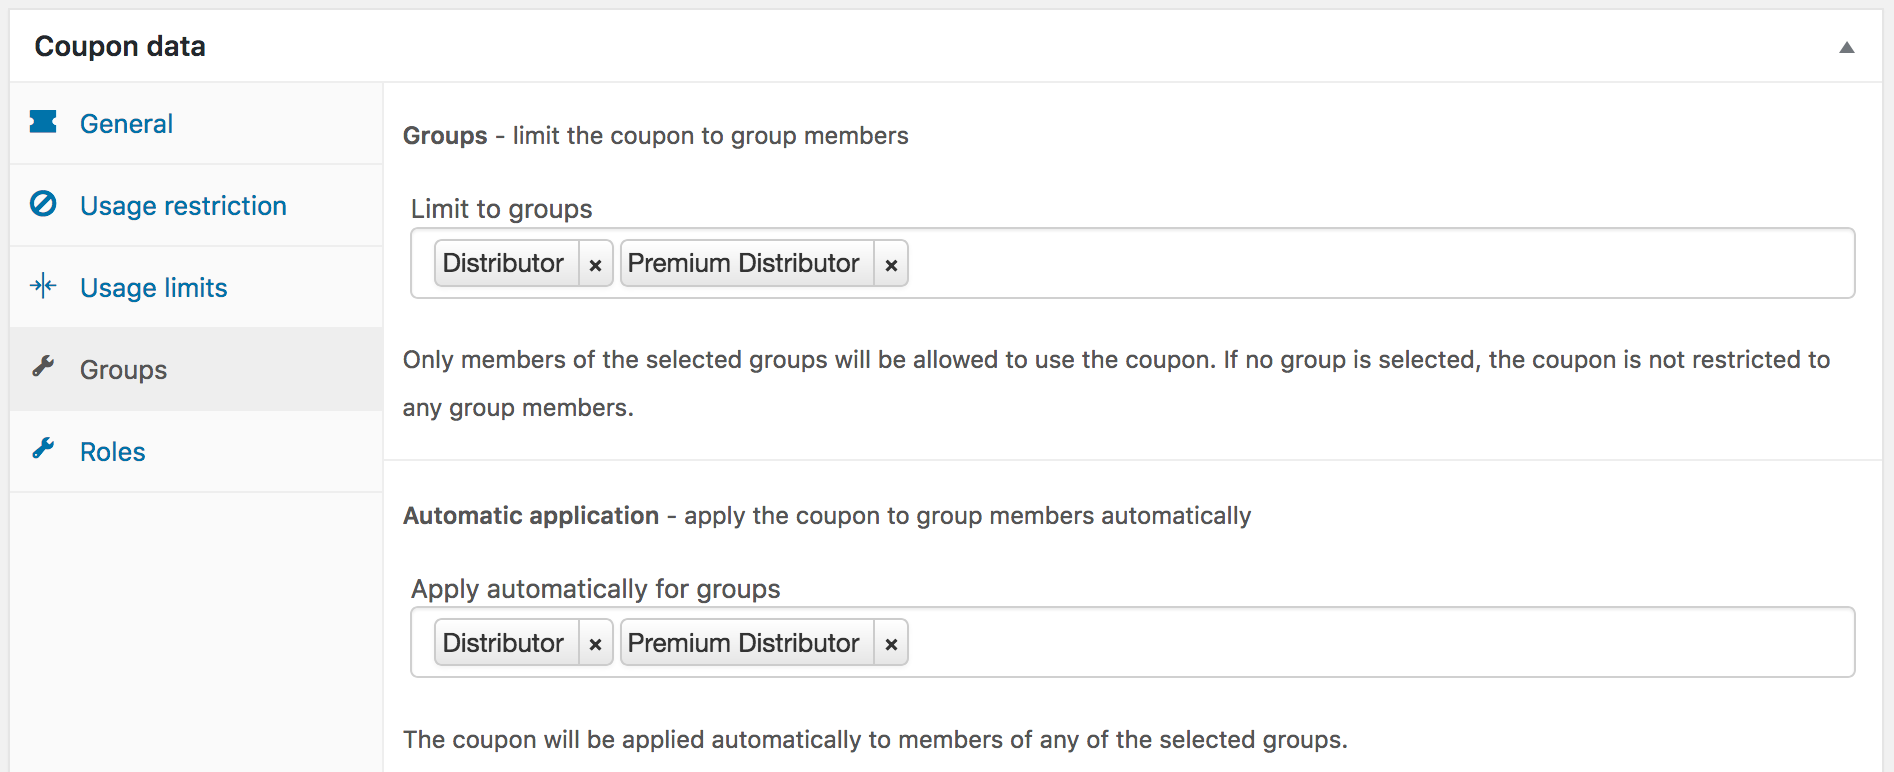 Showing coupon settings for distributor groups